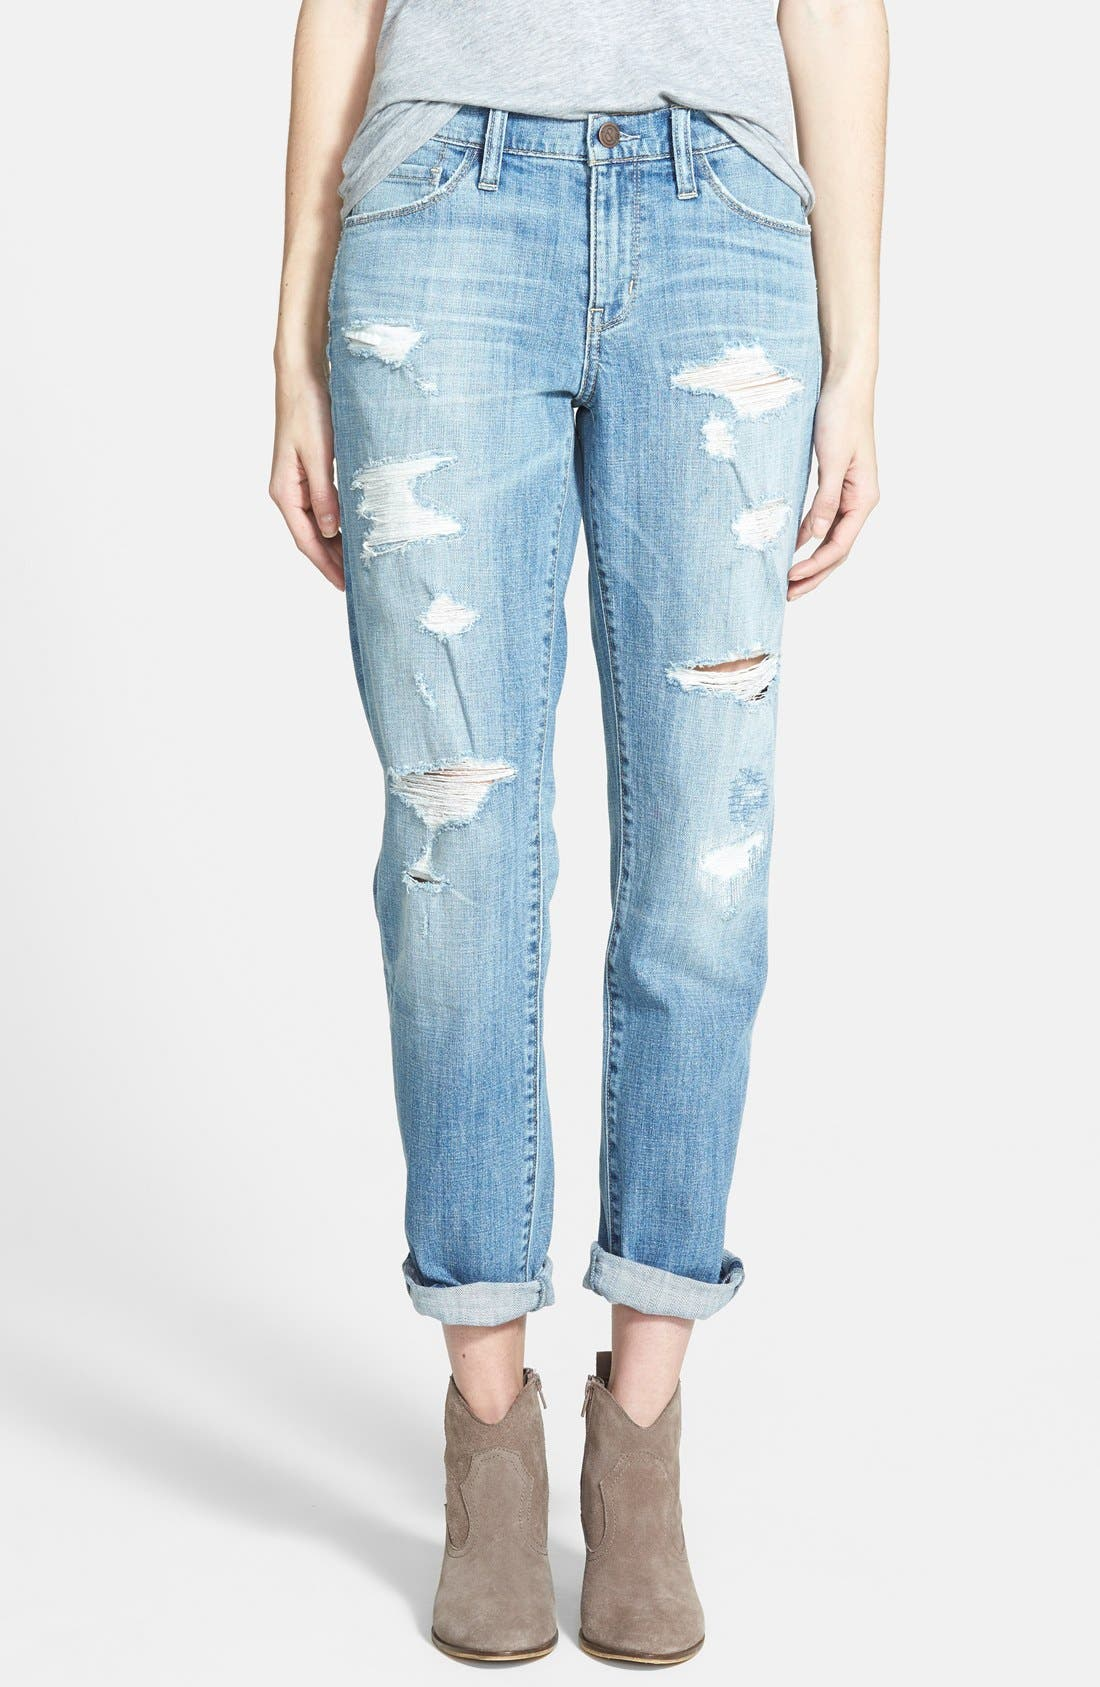 Treasure&Bond Destructed Boyfriend Jeans,                             Main thumbnail 1, color,                             400